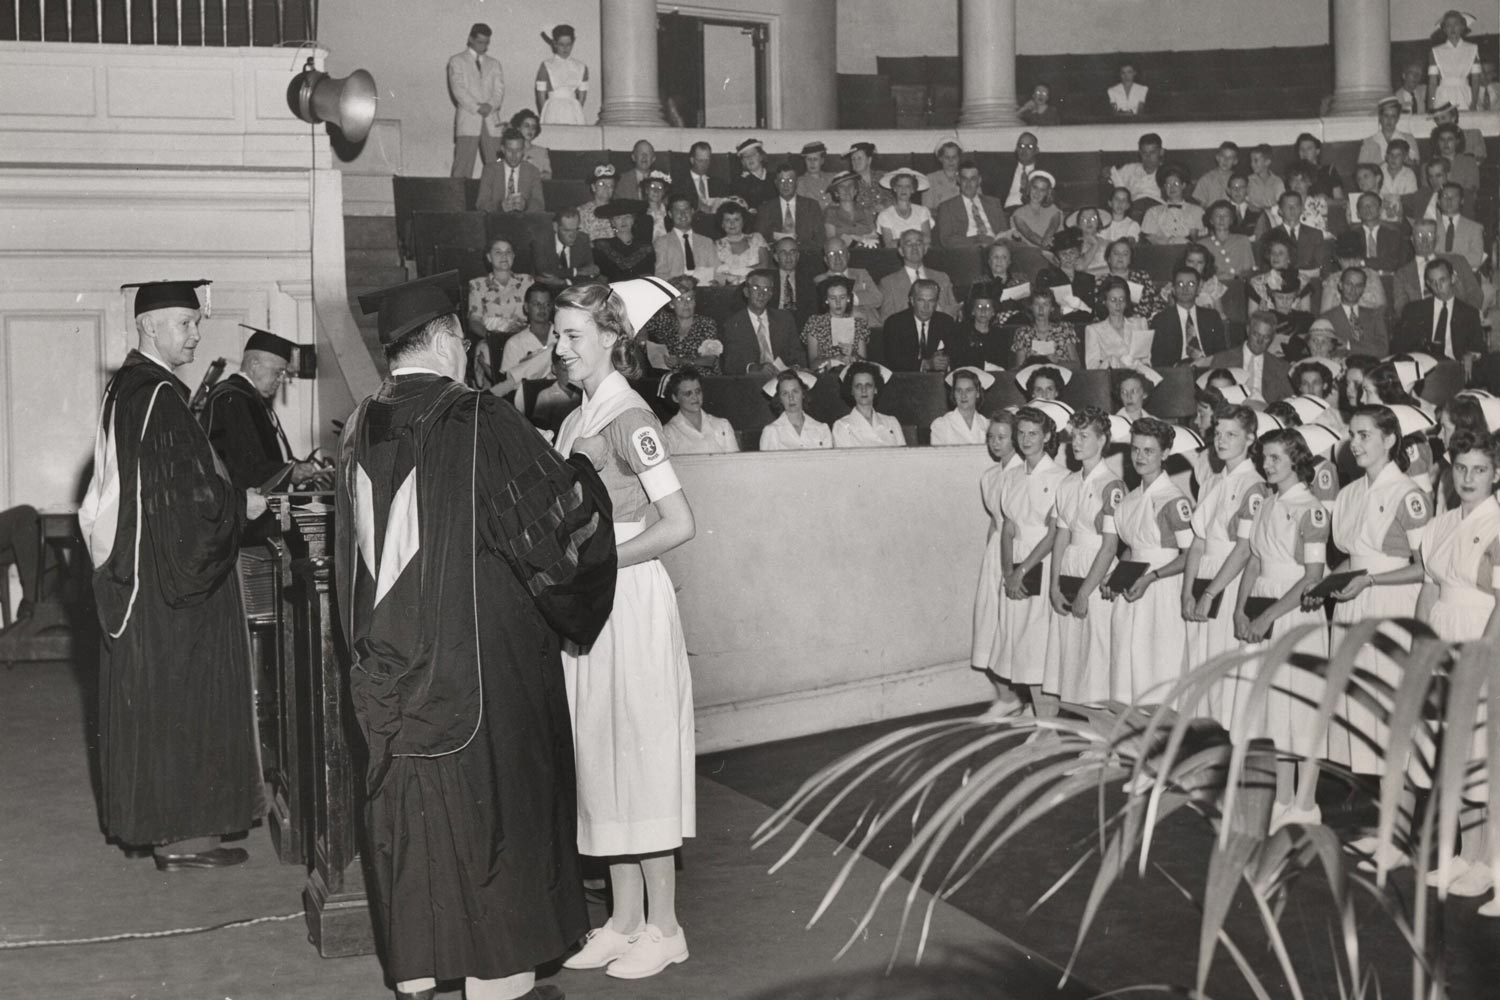 This nursing graduation ceremony was in 1947 during a period of increasing professionalism, although it would be two more years before UVA granted a B.S. in Nursing and nine years before it formally became the School of Nursing.